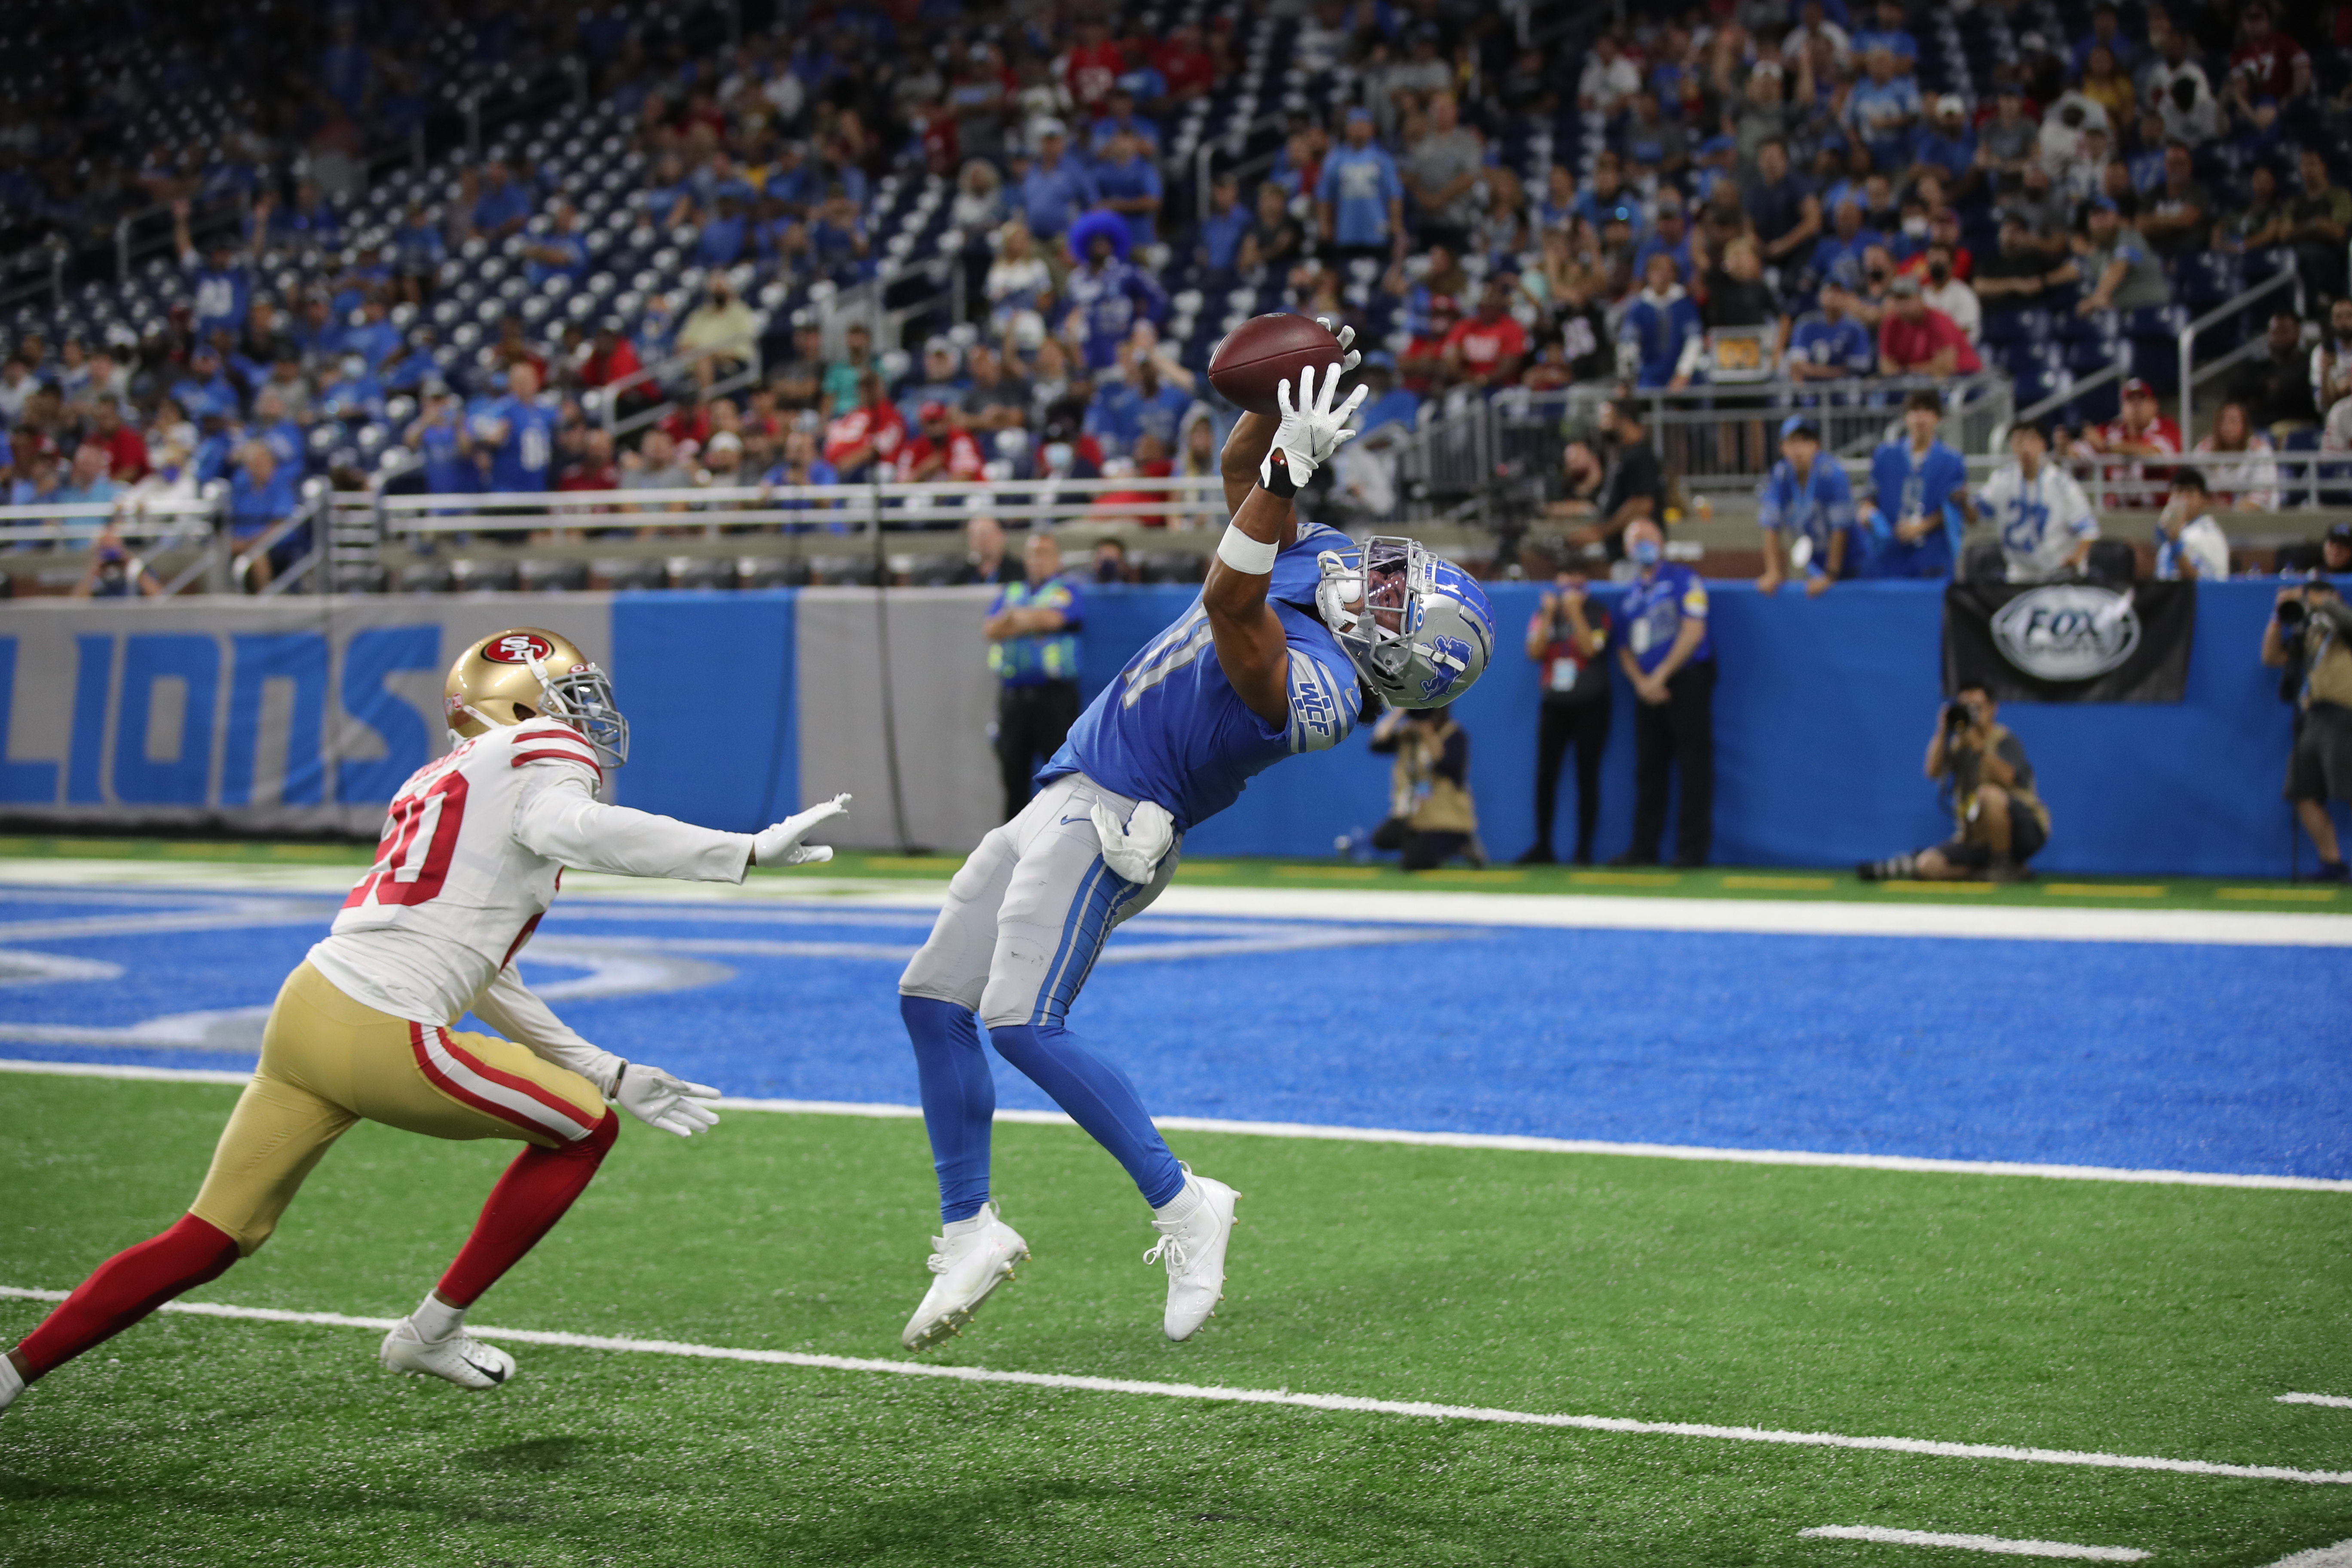 Kalif Raymond #11 of the Detroit Lions makes a catch during the game against the San Francisco 49ers at Ford Field on September 12, 2021 in Detroit, Michigan.